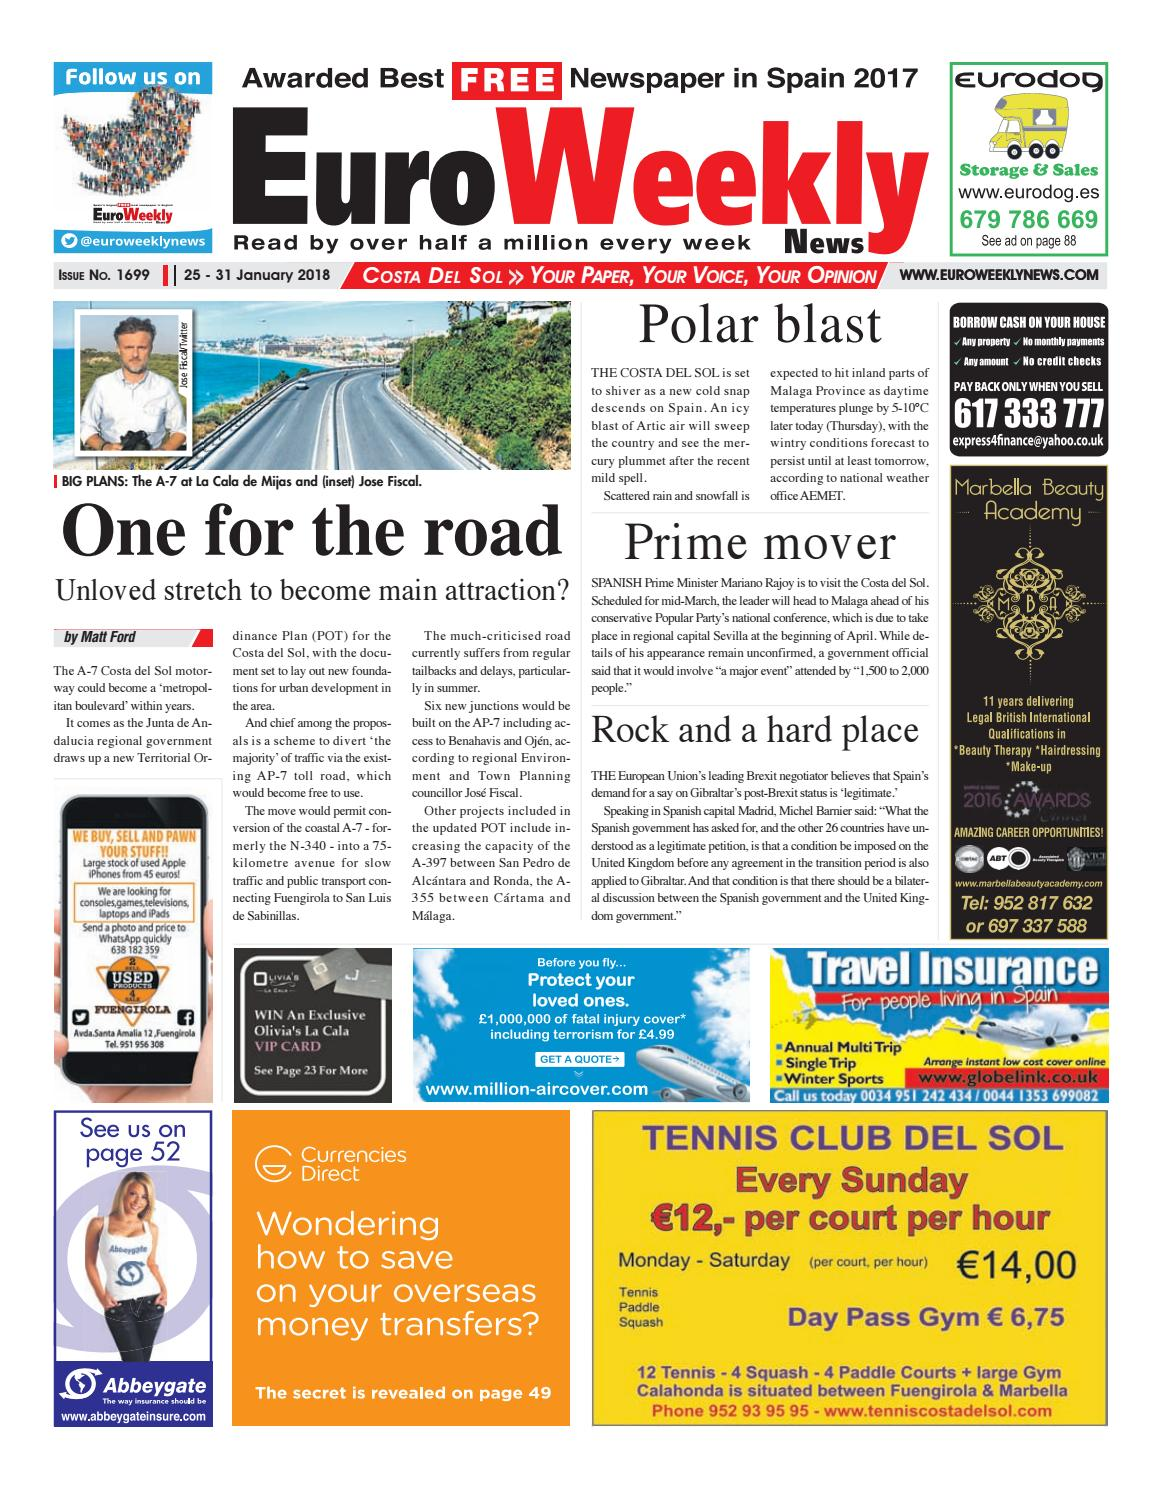 Euro weekly news costa del sol 25 31 january 2018 issue 1699 by euro weekly news costa del sol 25 31 january 2018 issue 1699 by euro weekly news media sa issuu fandeluxe Gallery